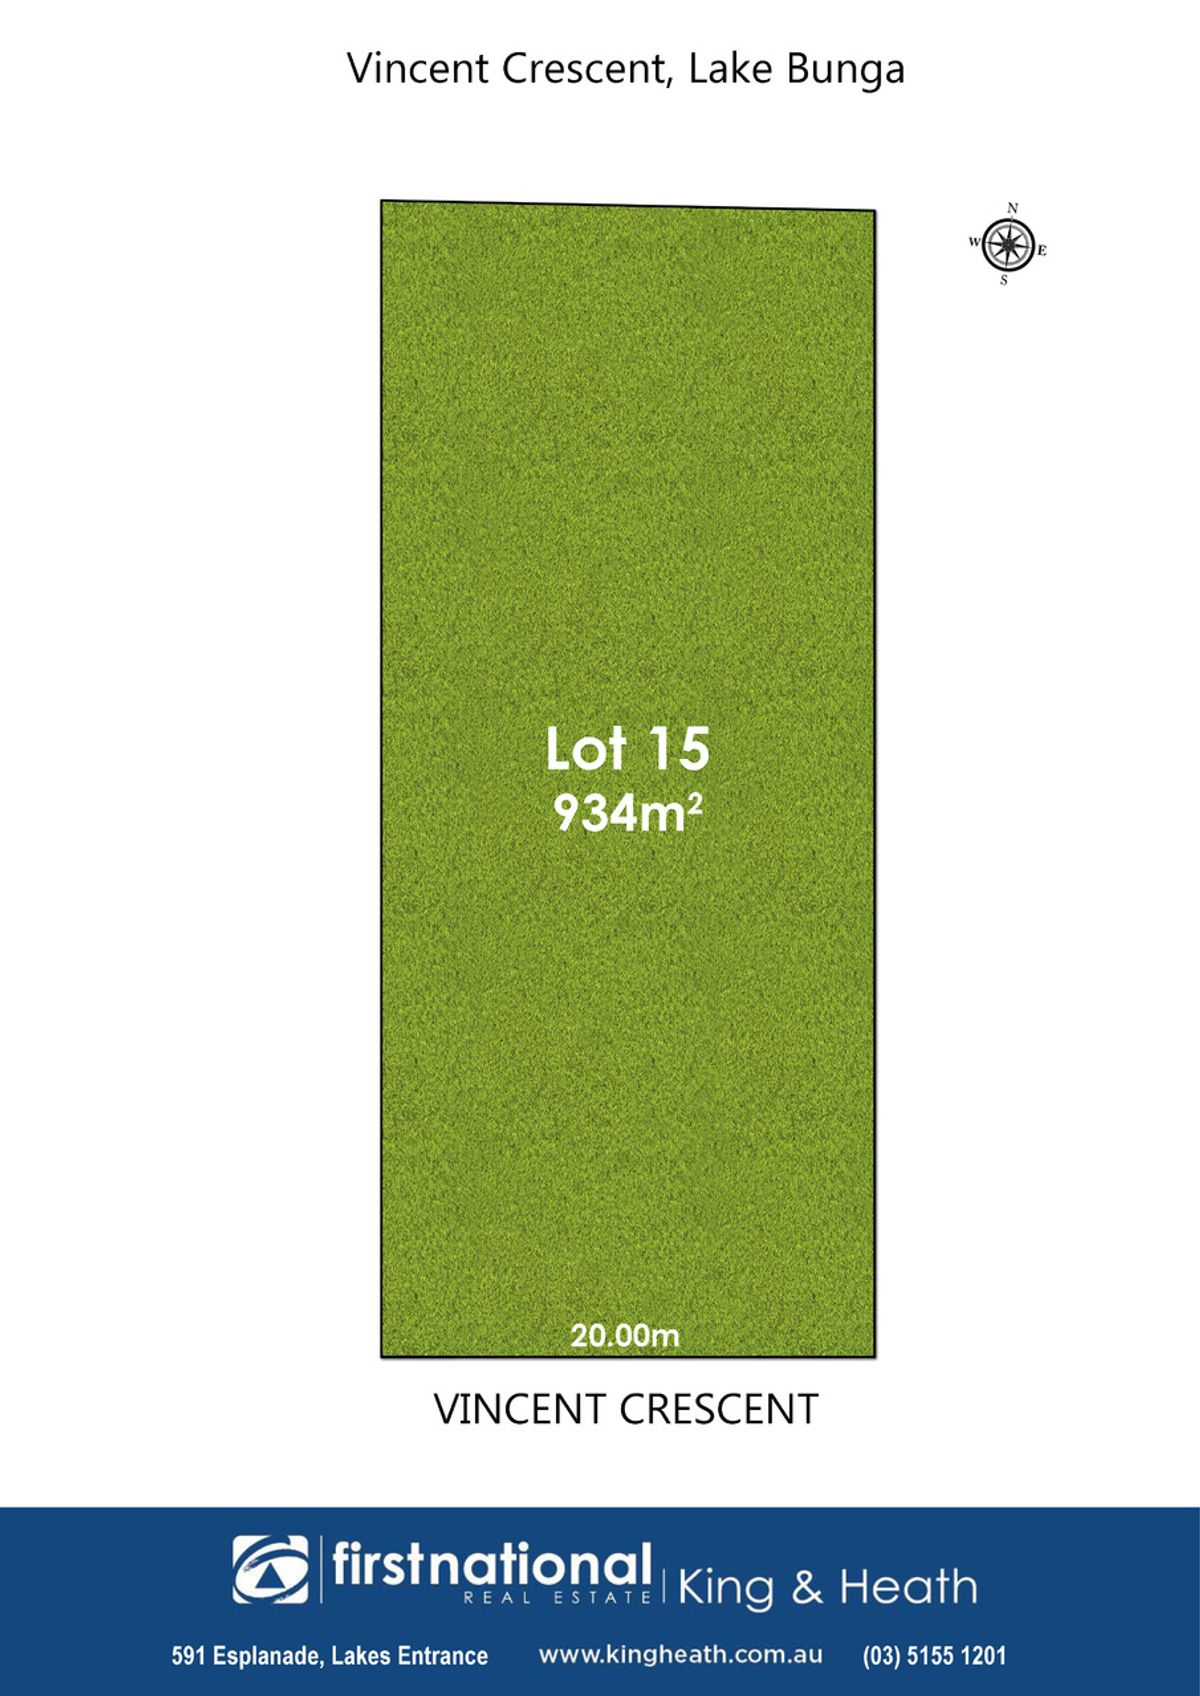 Lot 8, 15 Vincent Crescent, Lake Bunga, VIC 3909